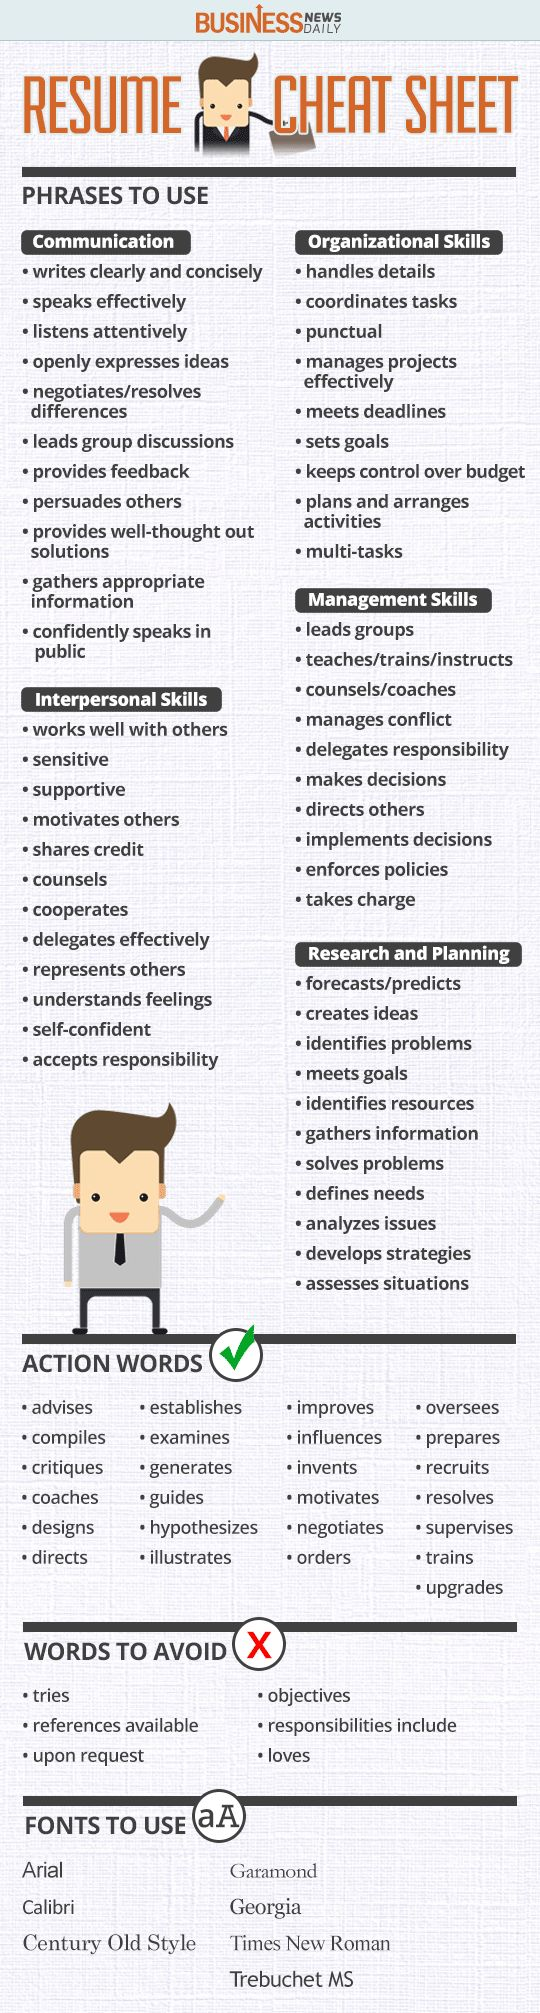 Opposenewapstandardsus  Winsome  Ideas About Resume On Pinterest  Cv Format Resume Cv And  With Hot Resume Cheat Sheet Infographic Andrews Almost Done With A Complete Unit On Employment Which With Adorable Find Resumes Online Free Also Funtional Resume In Addition Or Nurse Resume And Resume Skills For Retail As Well As Resume Formats In Word Additionally Beginner Acting Resume From Pinterestcom With Opposenewapstandardsus  Hot  Ideas About Resume On Pinterest  Cv Format Resume Cv And  With Adorable Resume Cheat Sheet Infographic Andrews Almost Done With A Complete Unit On Employment Which And Winsome Find Resumes Online Free Also Funtional Resume In Addition Or Nurse Resume From Pinterestcom